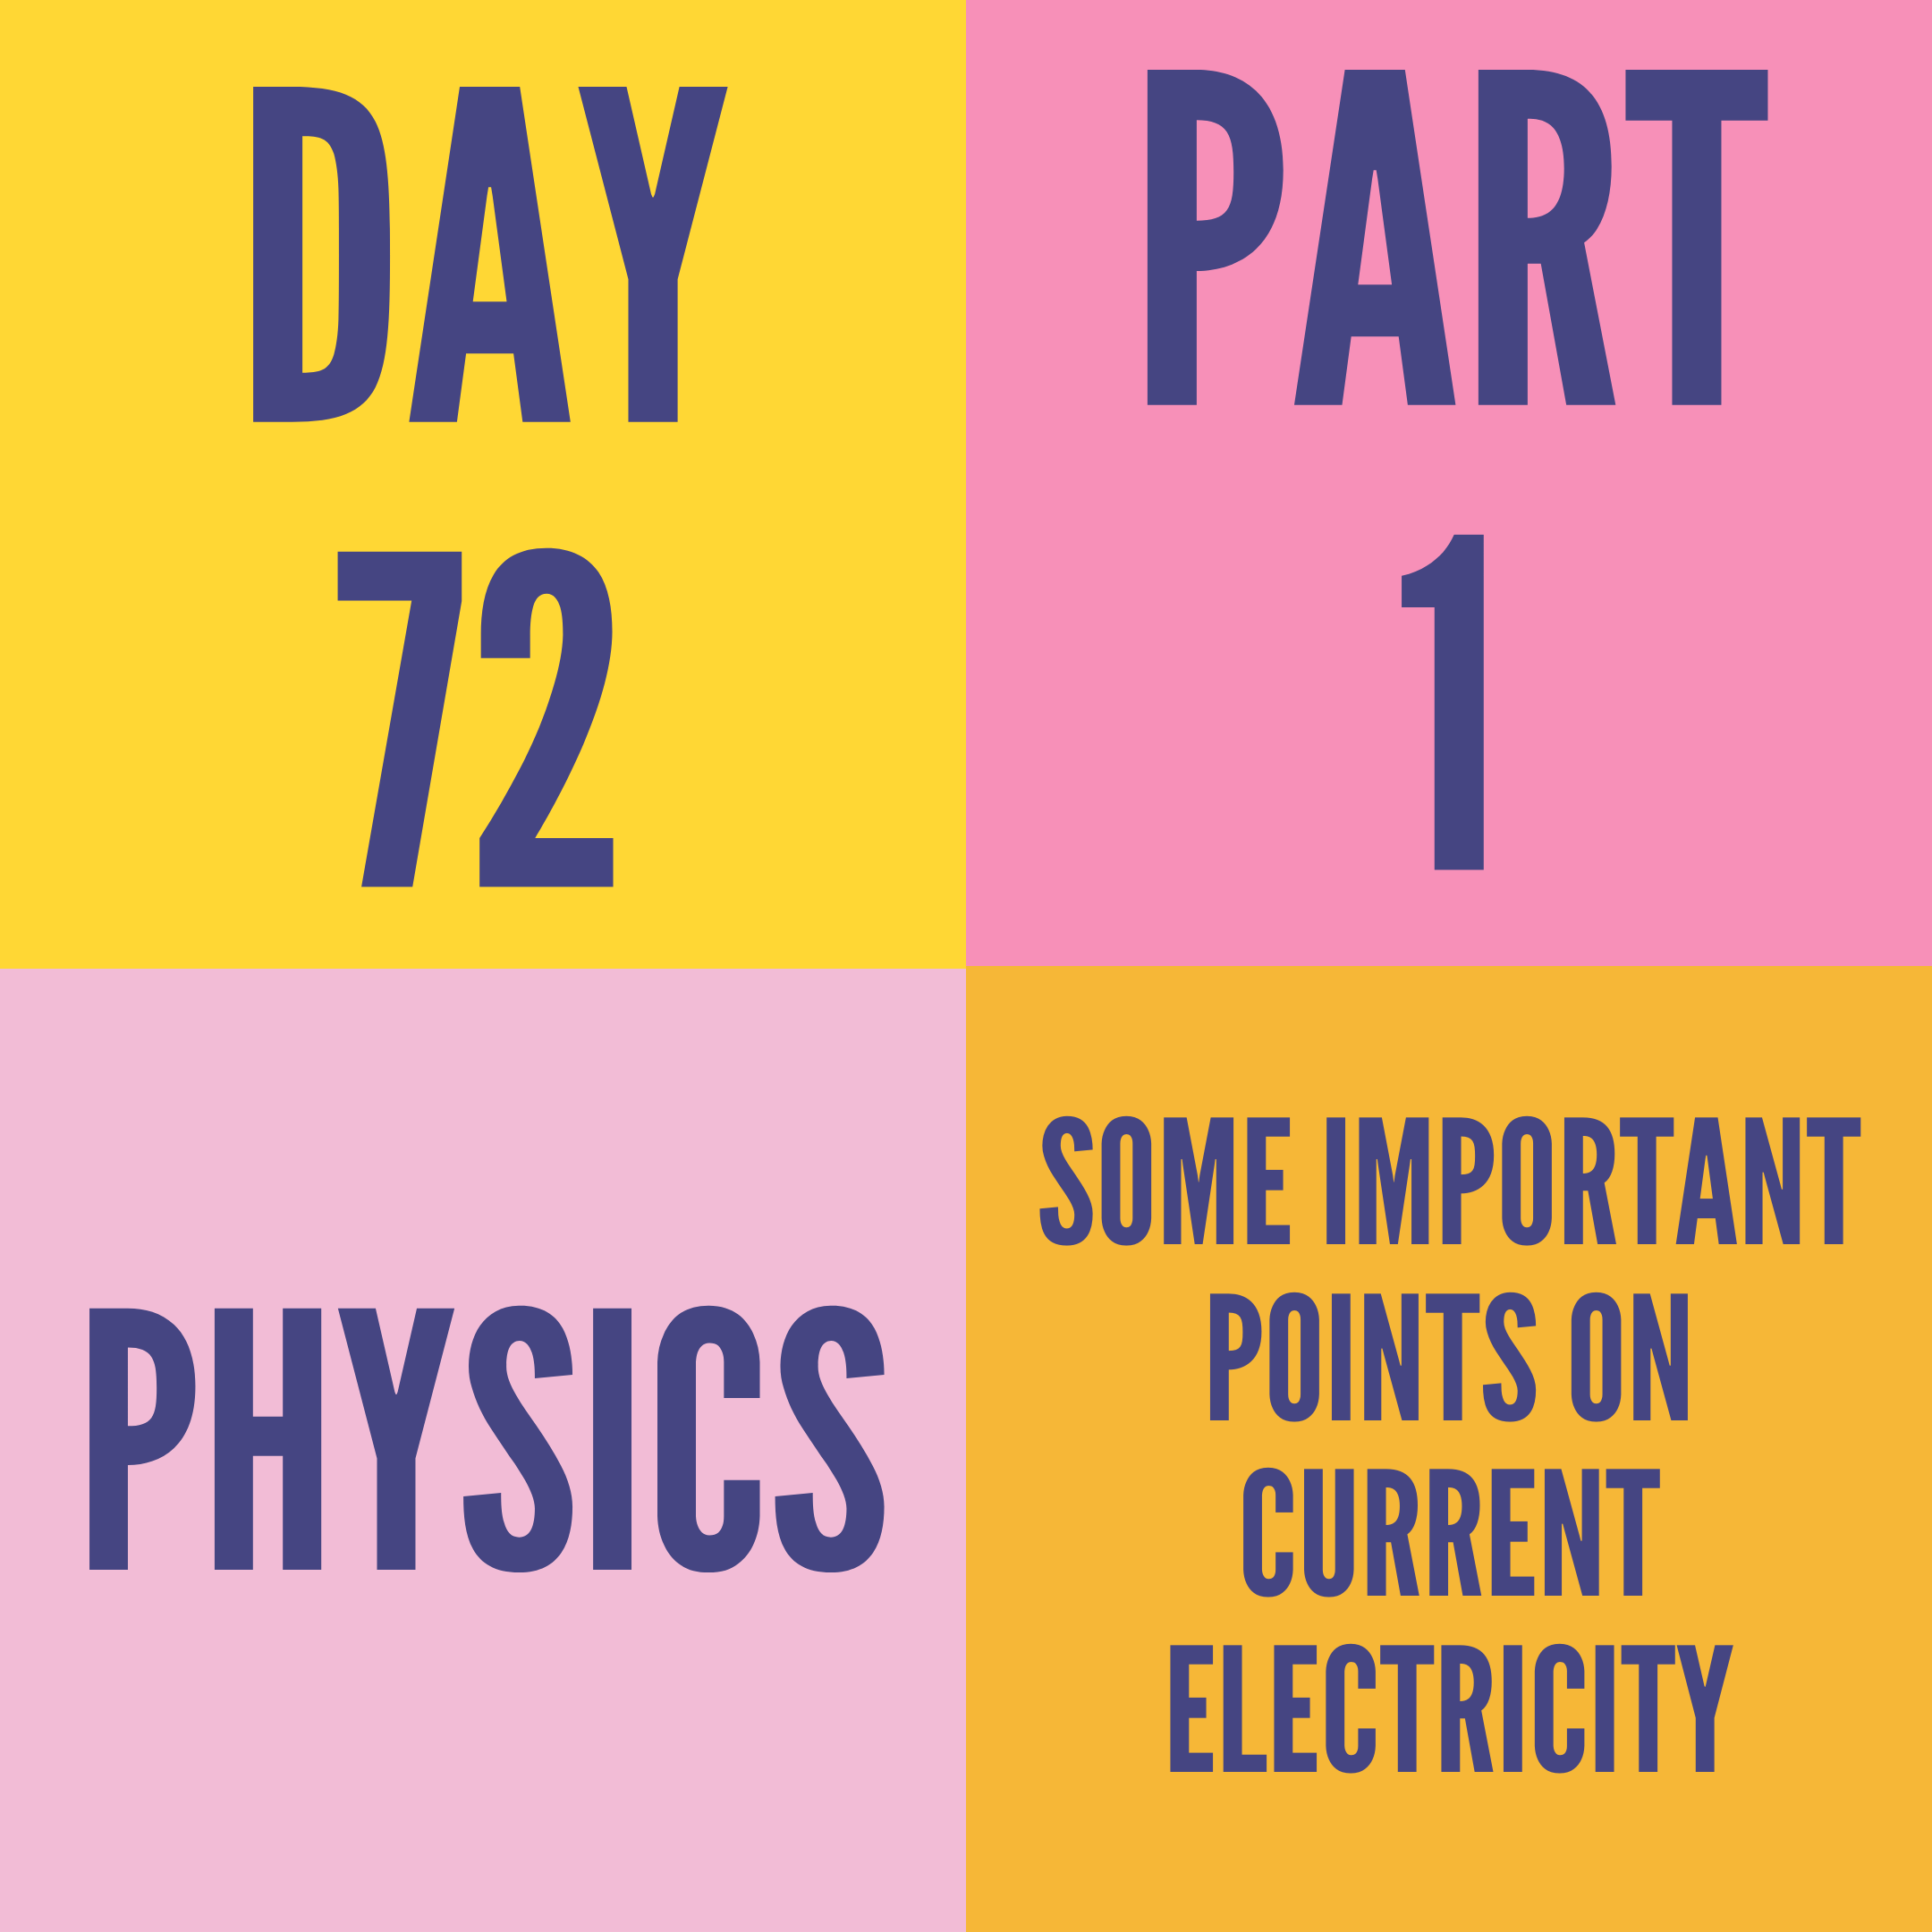 DAY-72 PART-1  SOME IMPORTANT POINTS ON CURRENT ELECTRICITY